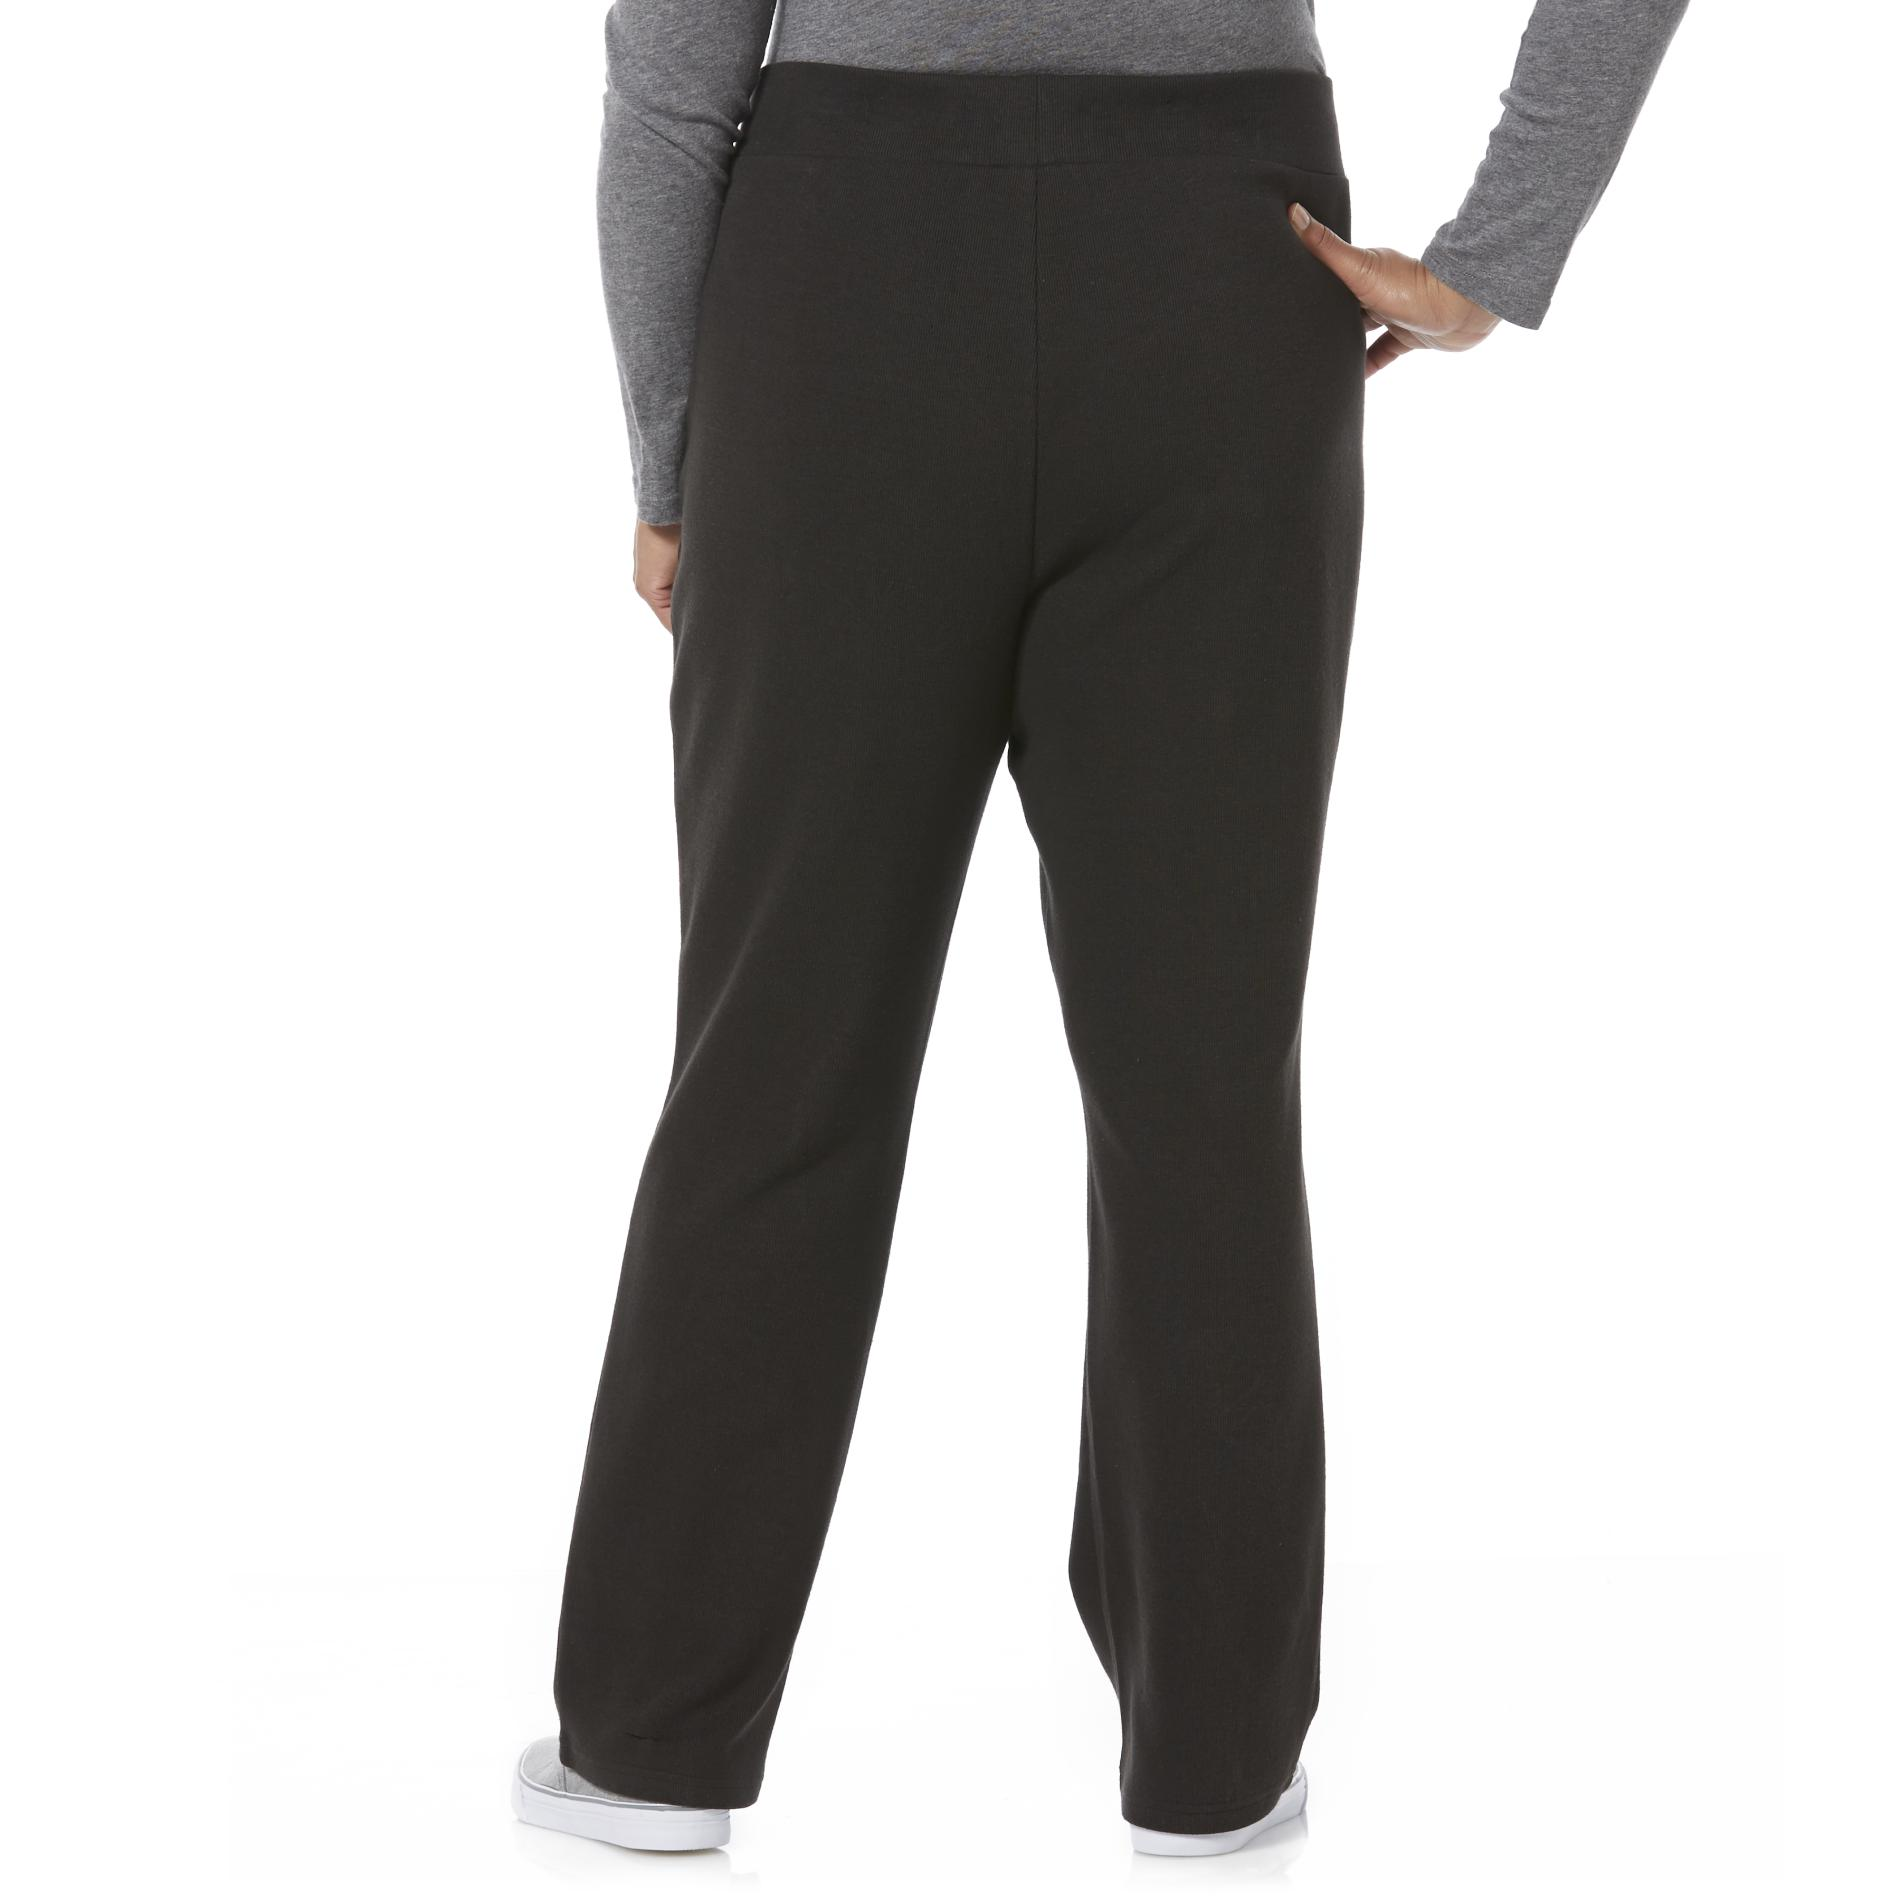 Laura Scott Women's Plus Rib Knit Pants